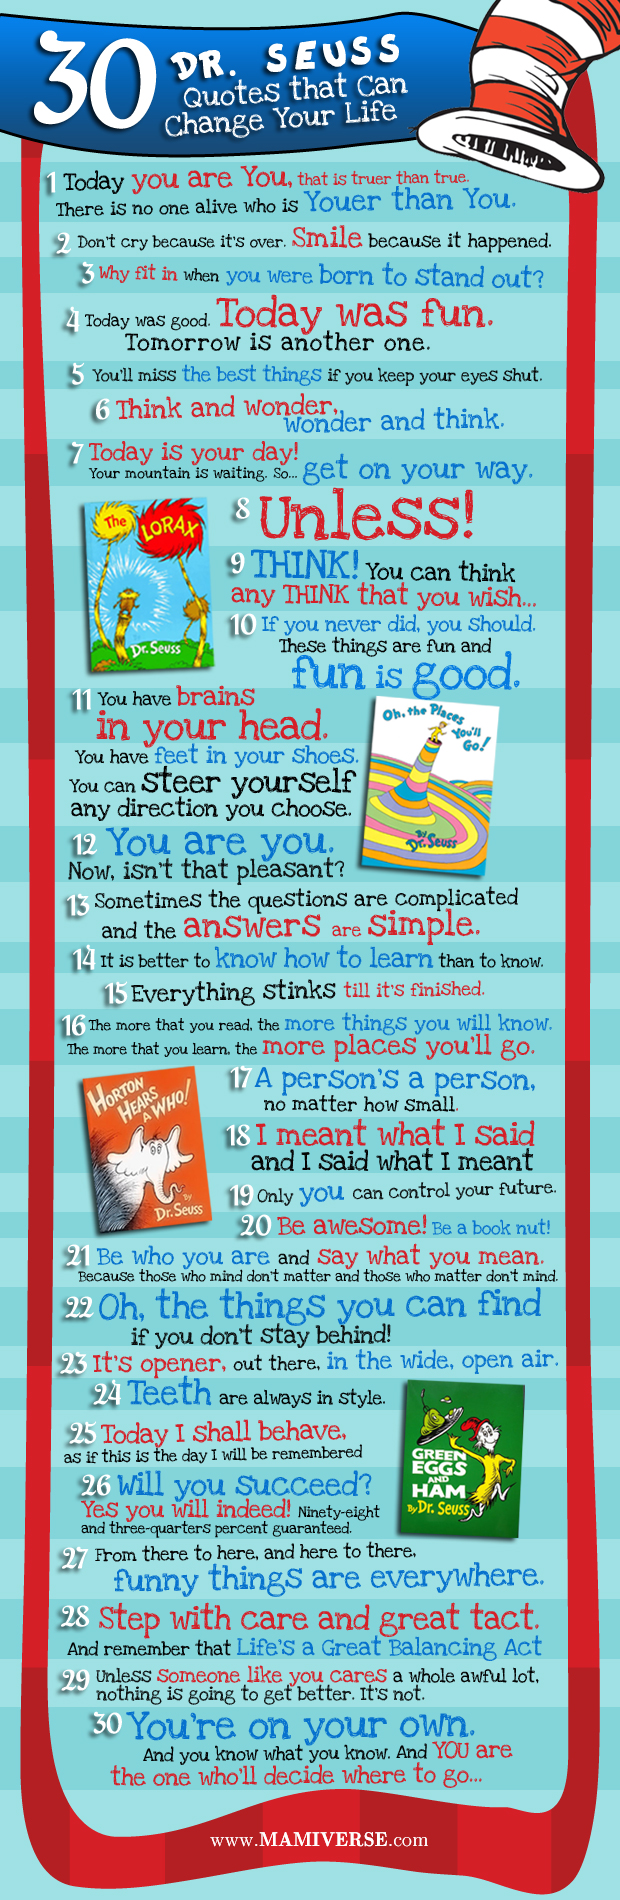 30 dr seuss quotes that can change your life infographic